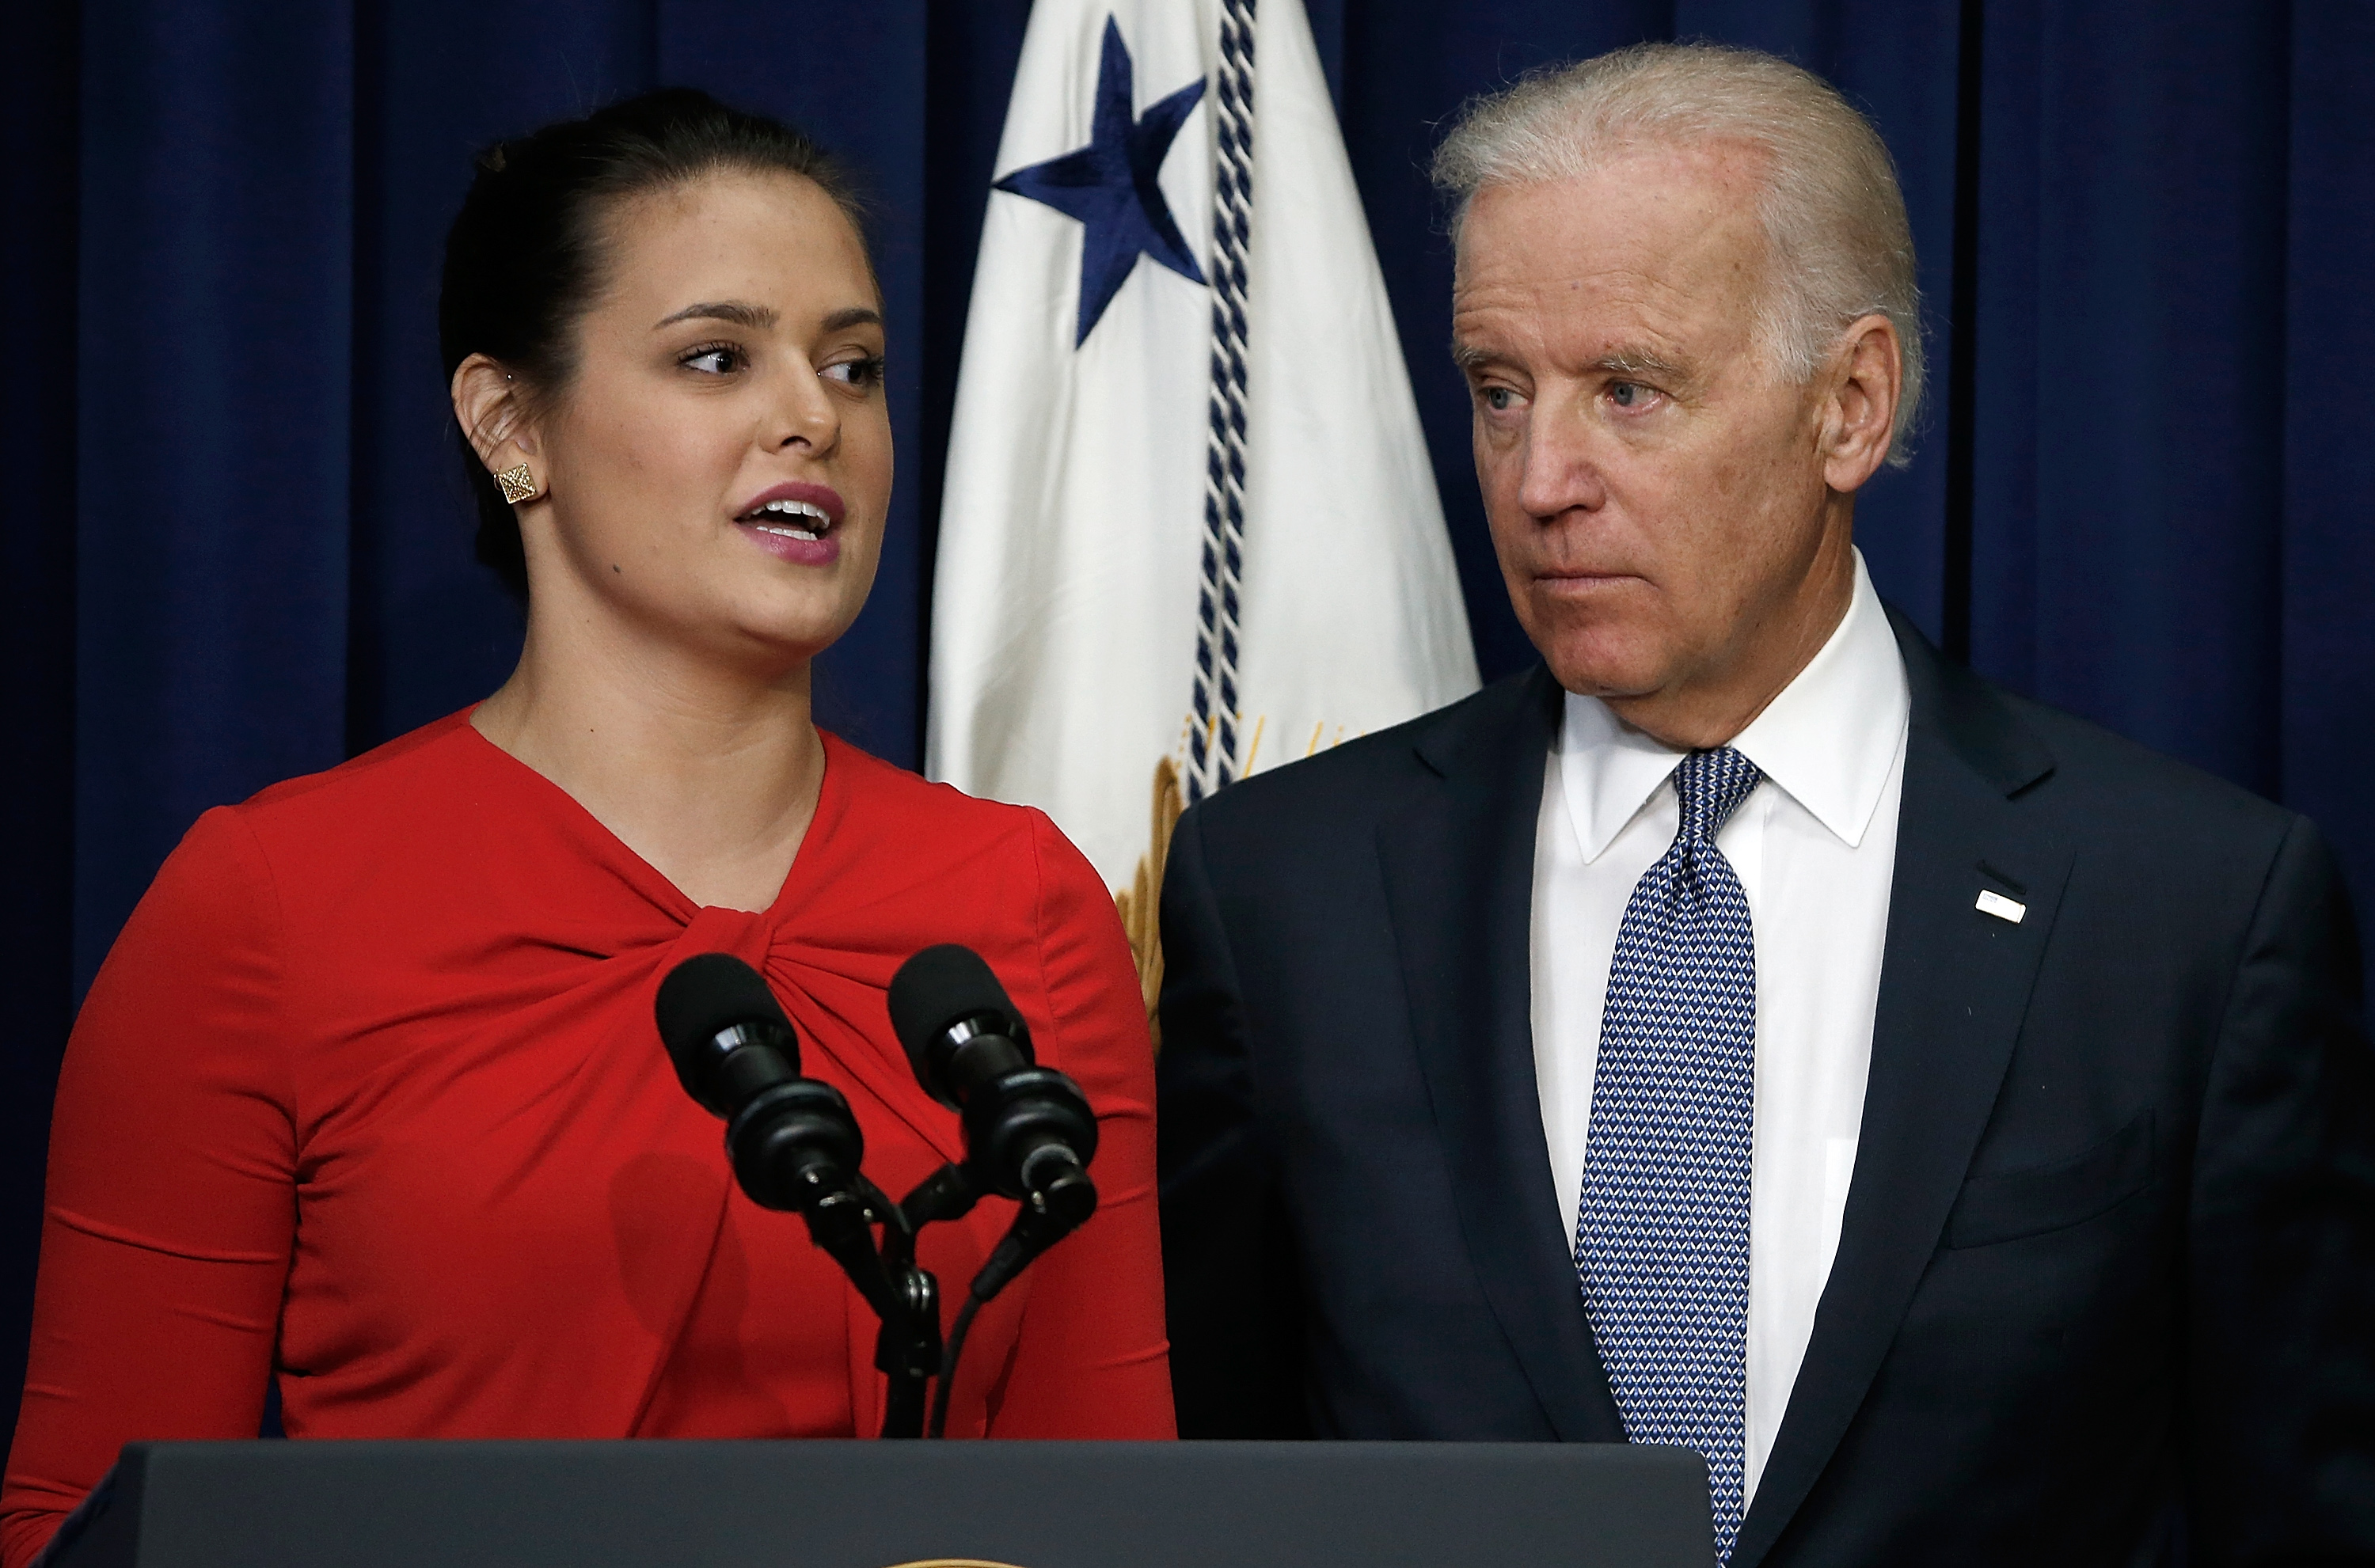 U.S Vice President Joe Biden listens as Madeleine Smith, a graduate of Harvard University who was raped while attending college, speaks during an event at the Eisenhower Executive Office Building, April 29, 2014 in Washington, DC. During the event, Biden announced the release of the first report of the White House Task Force to Protect Students from Sexual Assault.